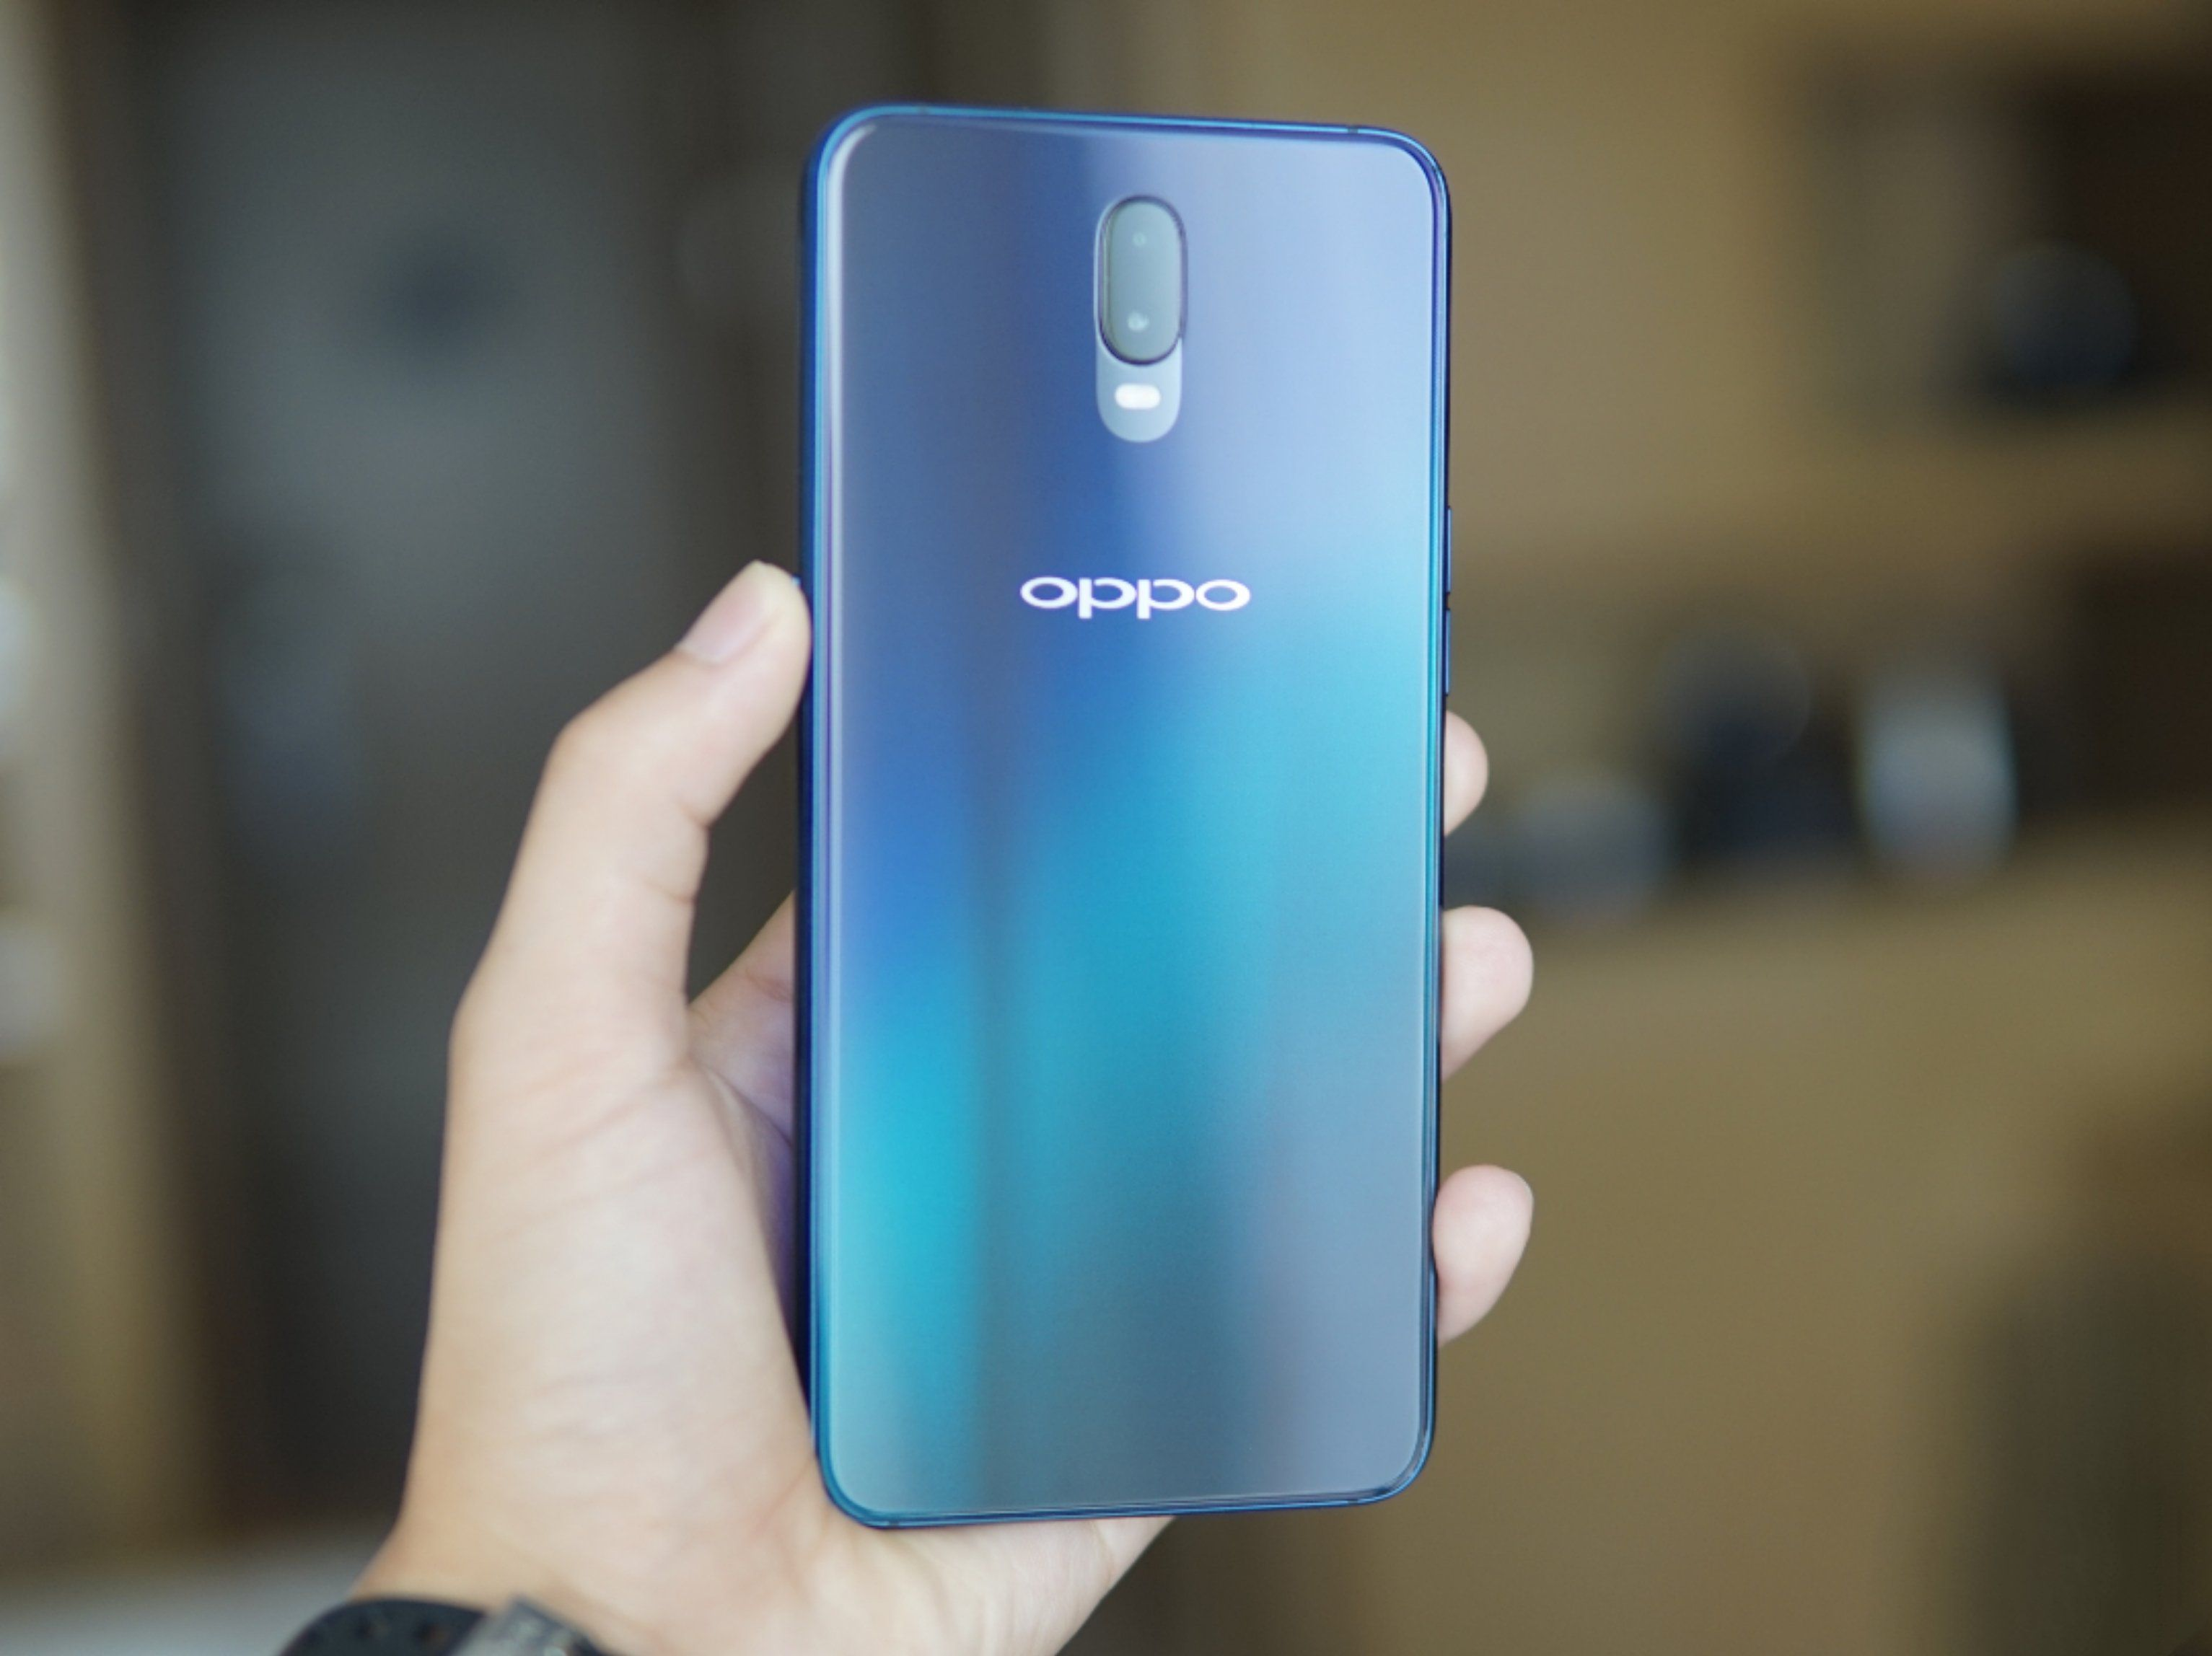 Oppo R17 Initial Review Mobiles Pinterest Smartphone New Charger Xiaomi Asus Zenfone Smartfren Andromax Officially Released Two Mobile Phones And Pro On August 23 After Nearly Five Months Of Research Development